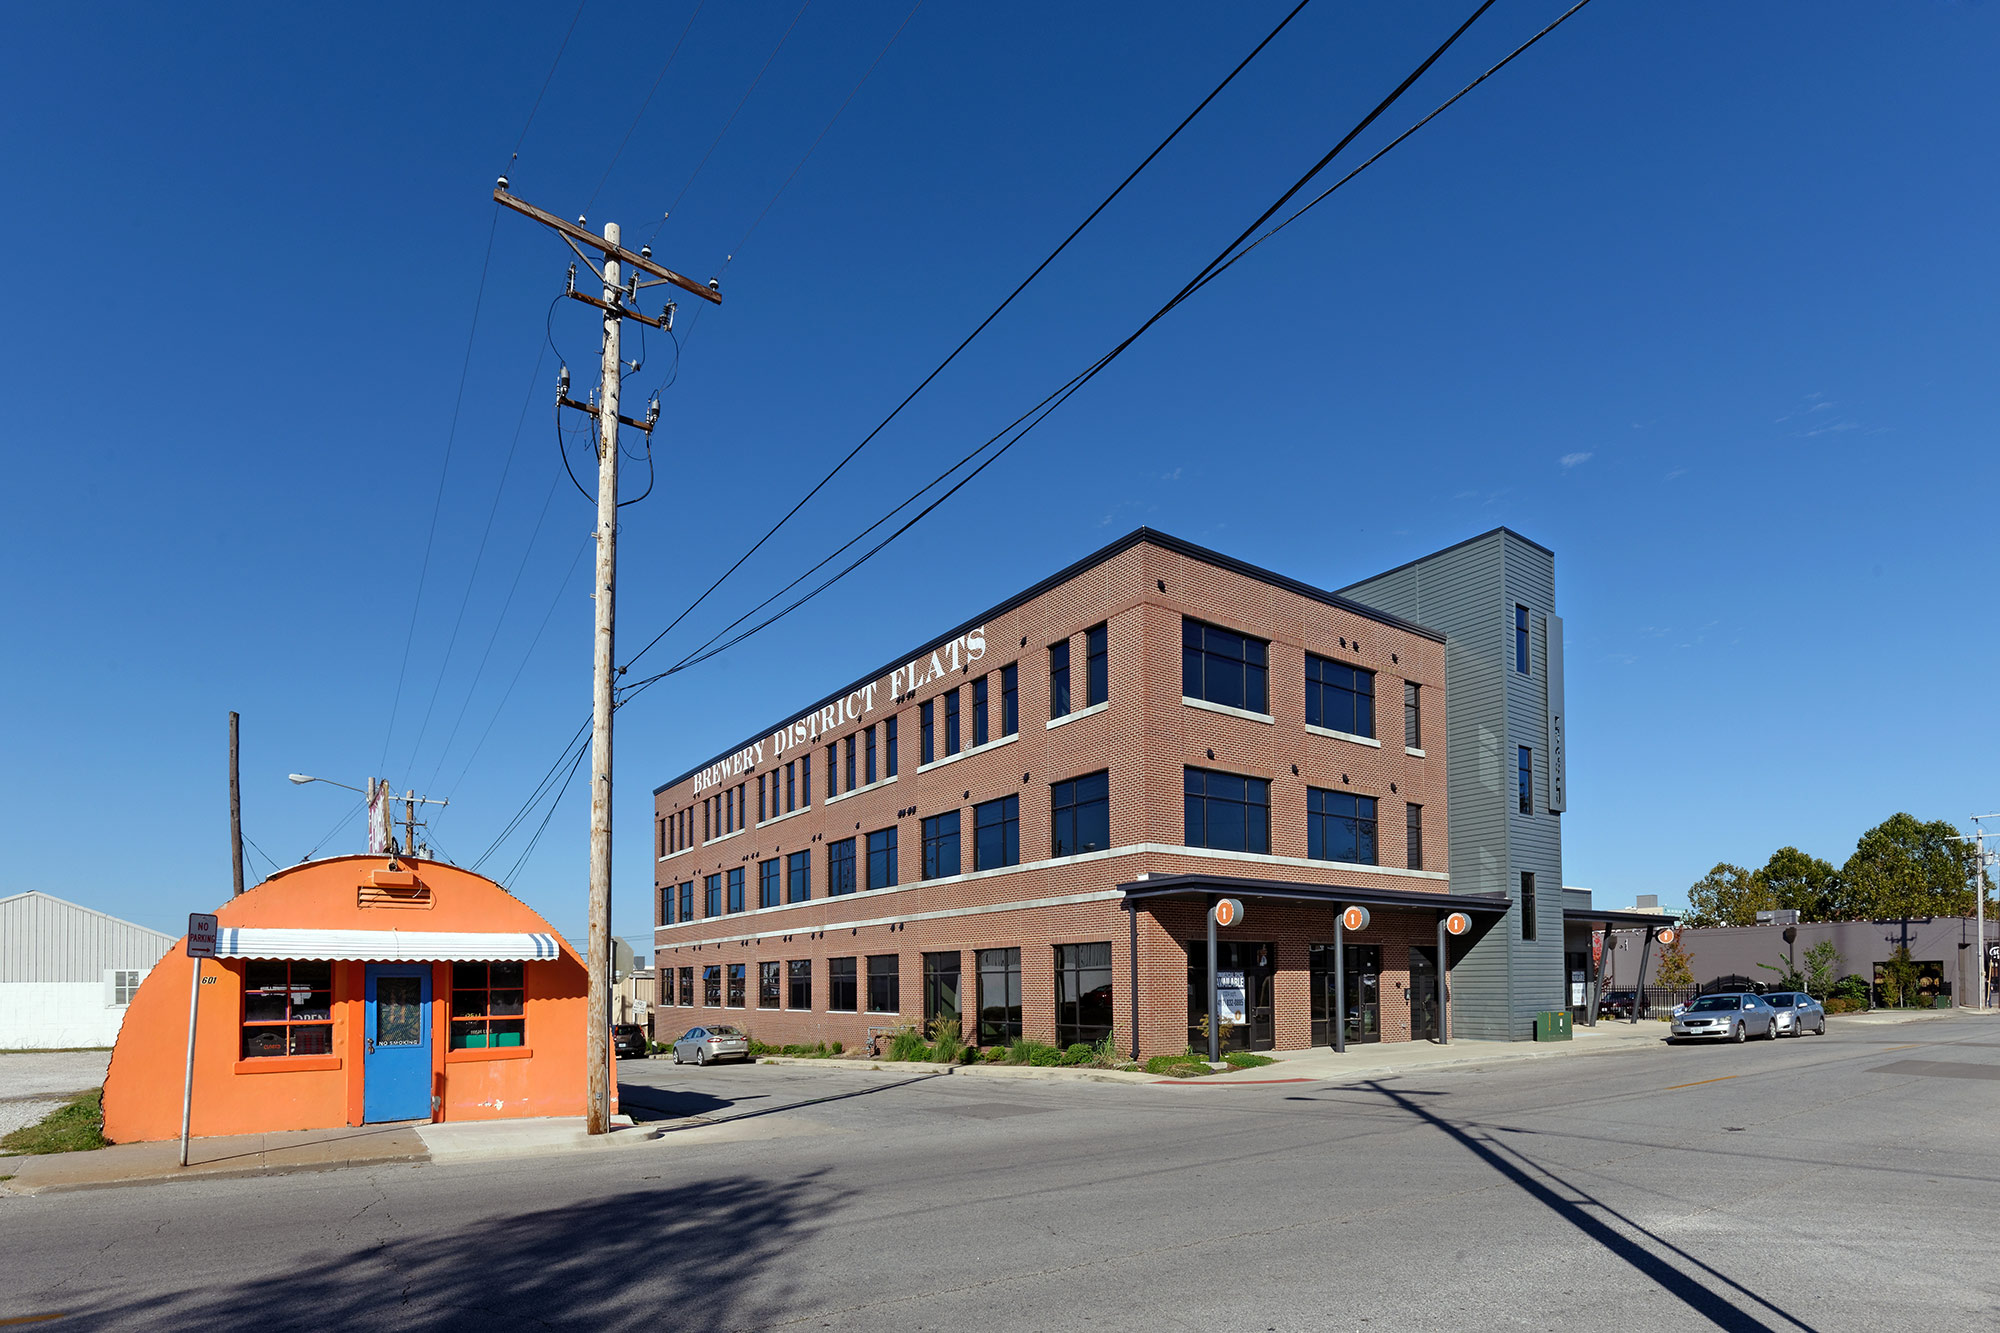 Brewery District Flats